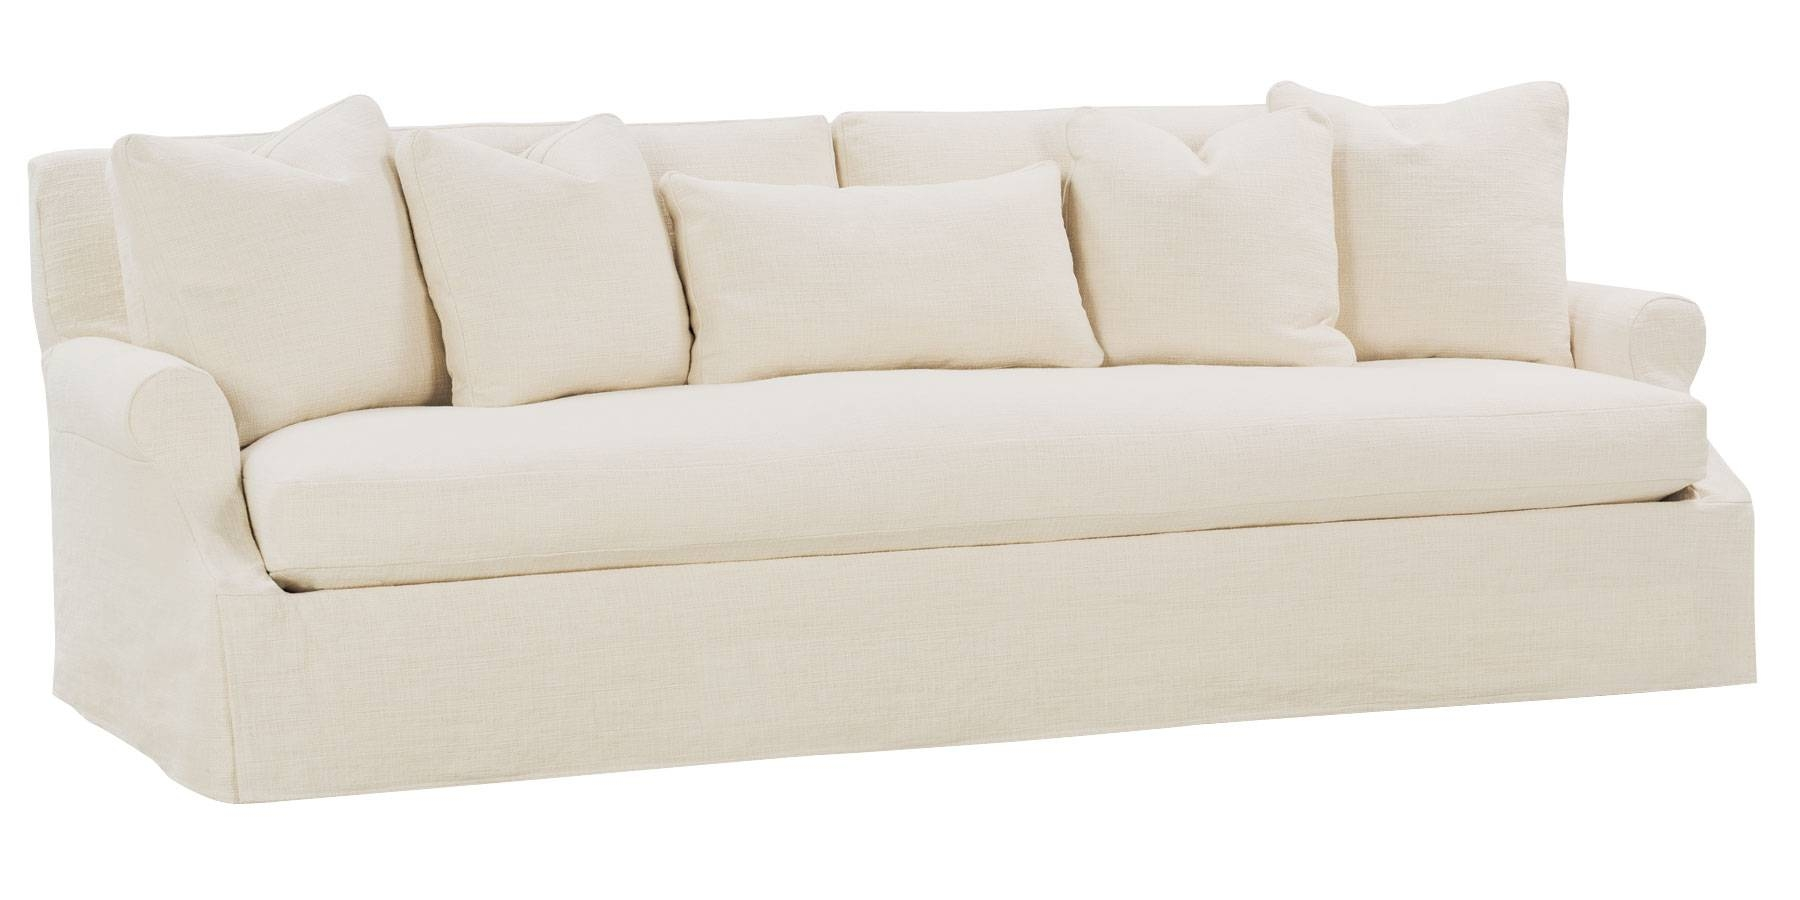 Comfortable Slipcovered Furniture, Slipcover Sofas, Couches Regarding Slipcovers Sofas (View 4 of 30)